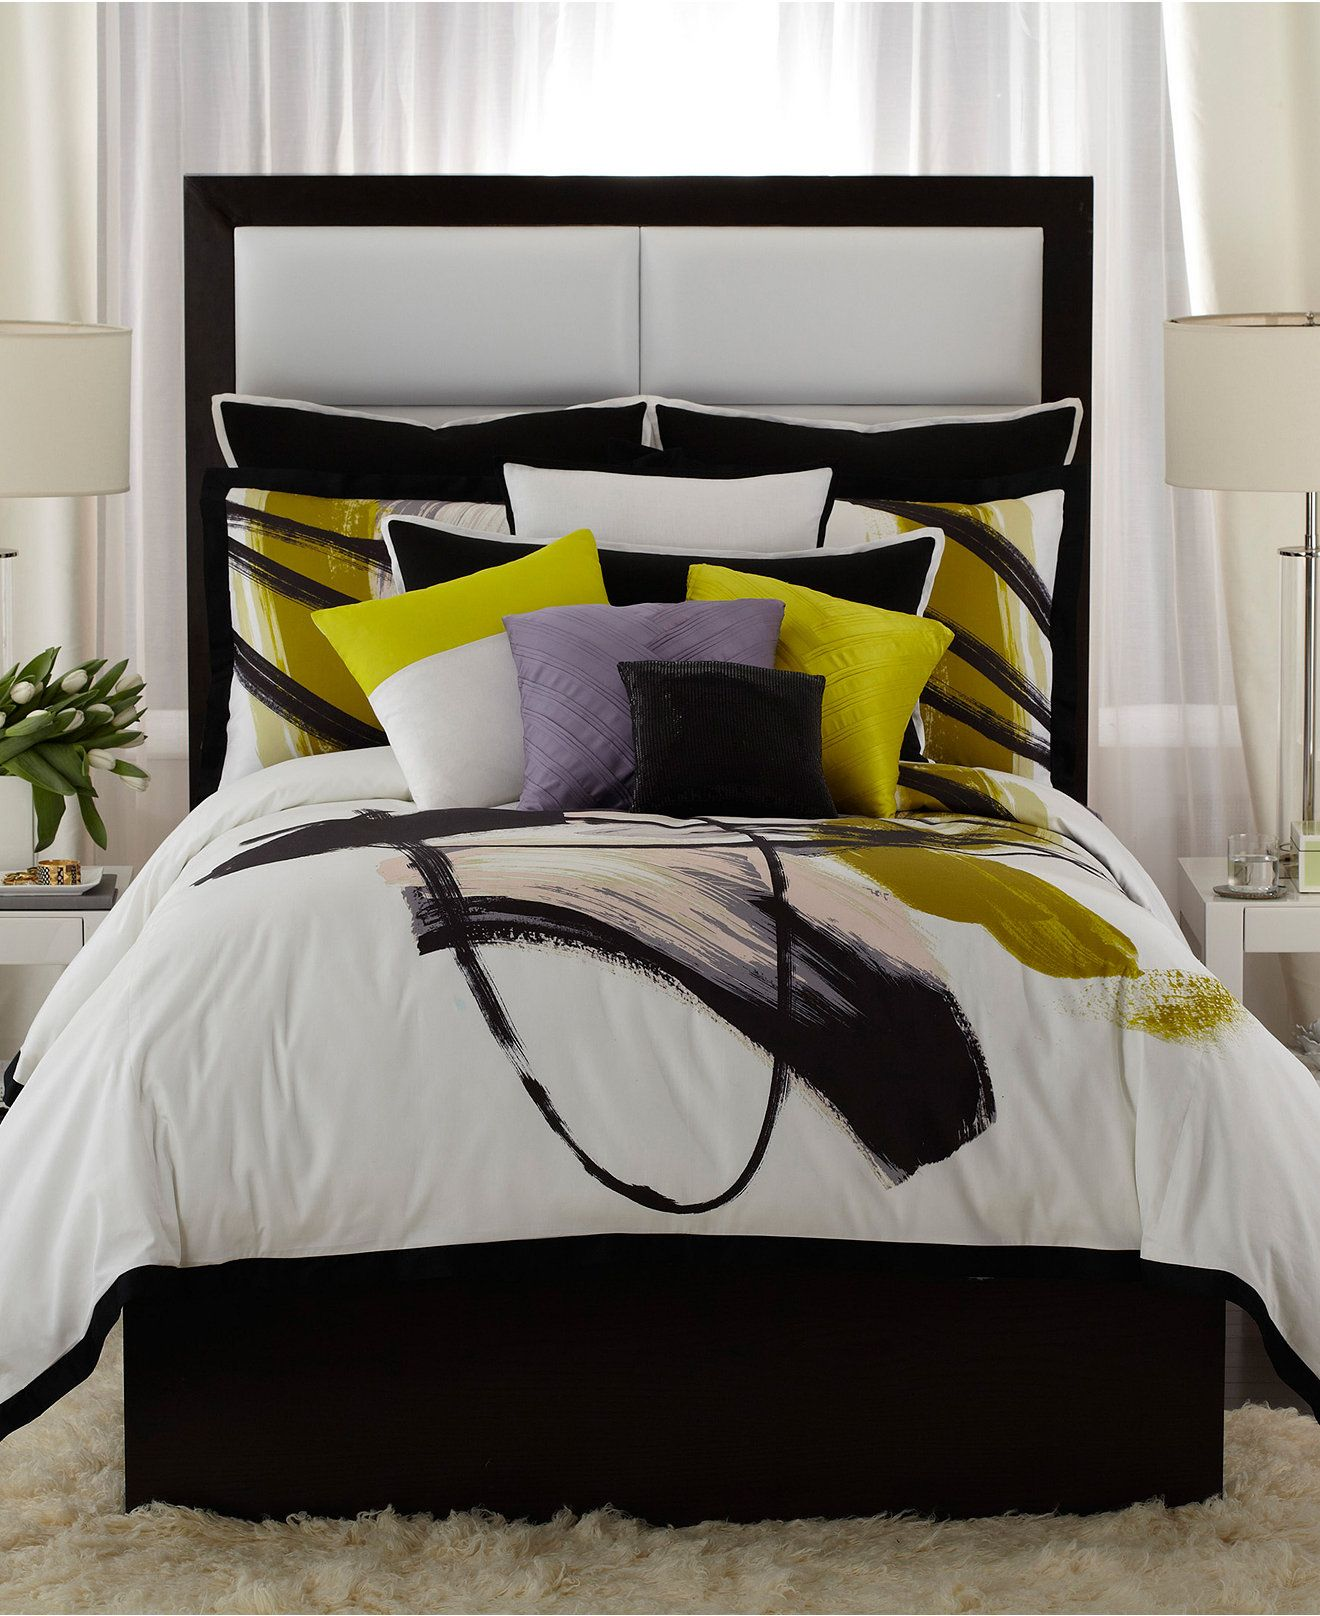 Vince Camuto Basel forter Mini Sets Bedding Collections Bed